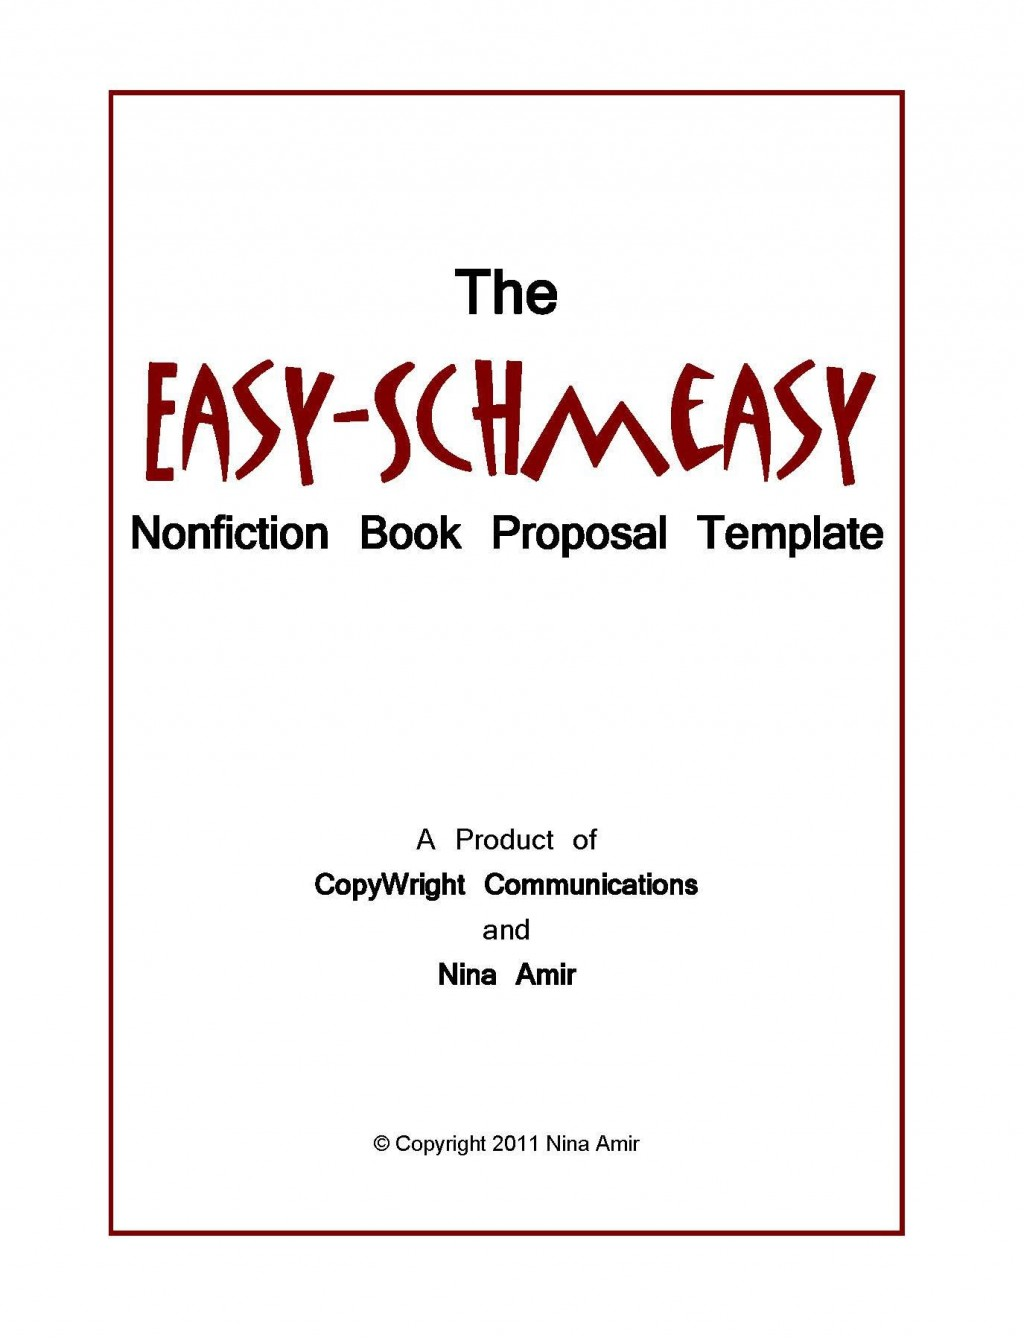 005 Unusual Nonfiction Book Proposal Template Sample  ExampleLarge